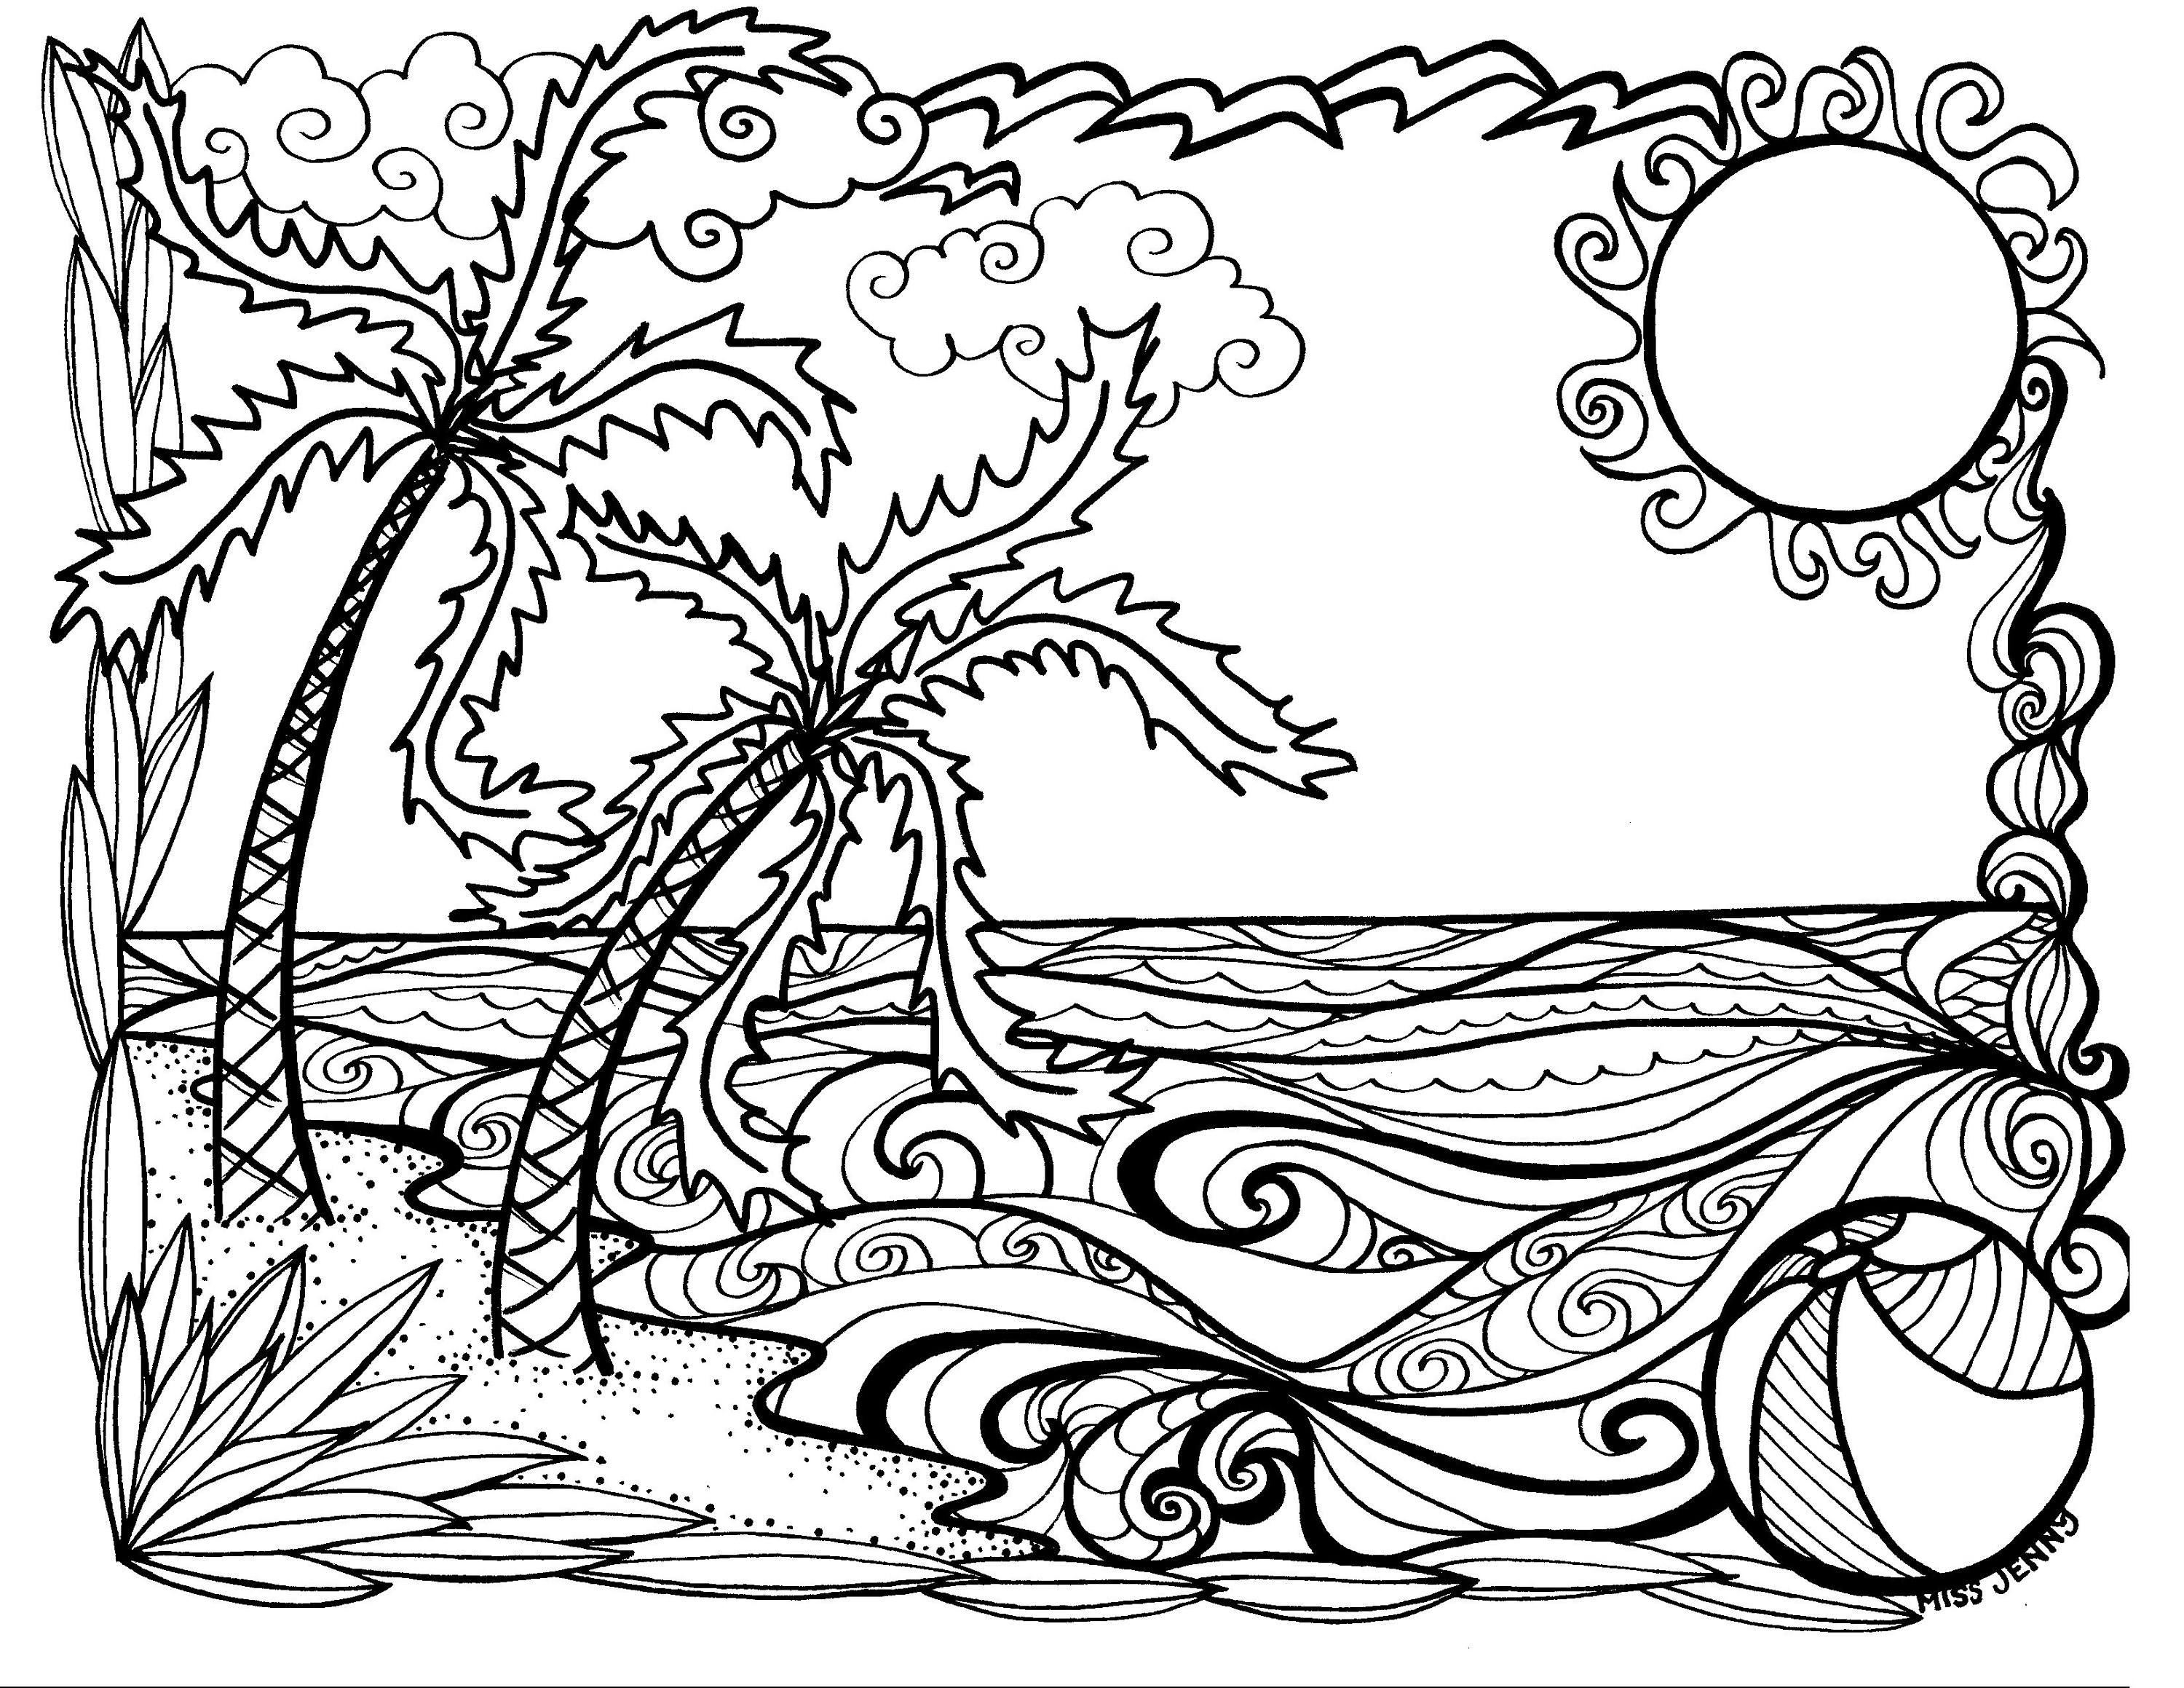 Summer Fun At The Beach Coloring Page By Missjennydesignsus On